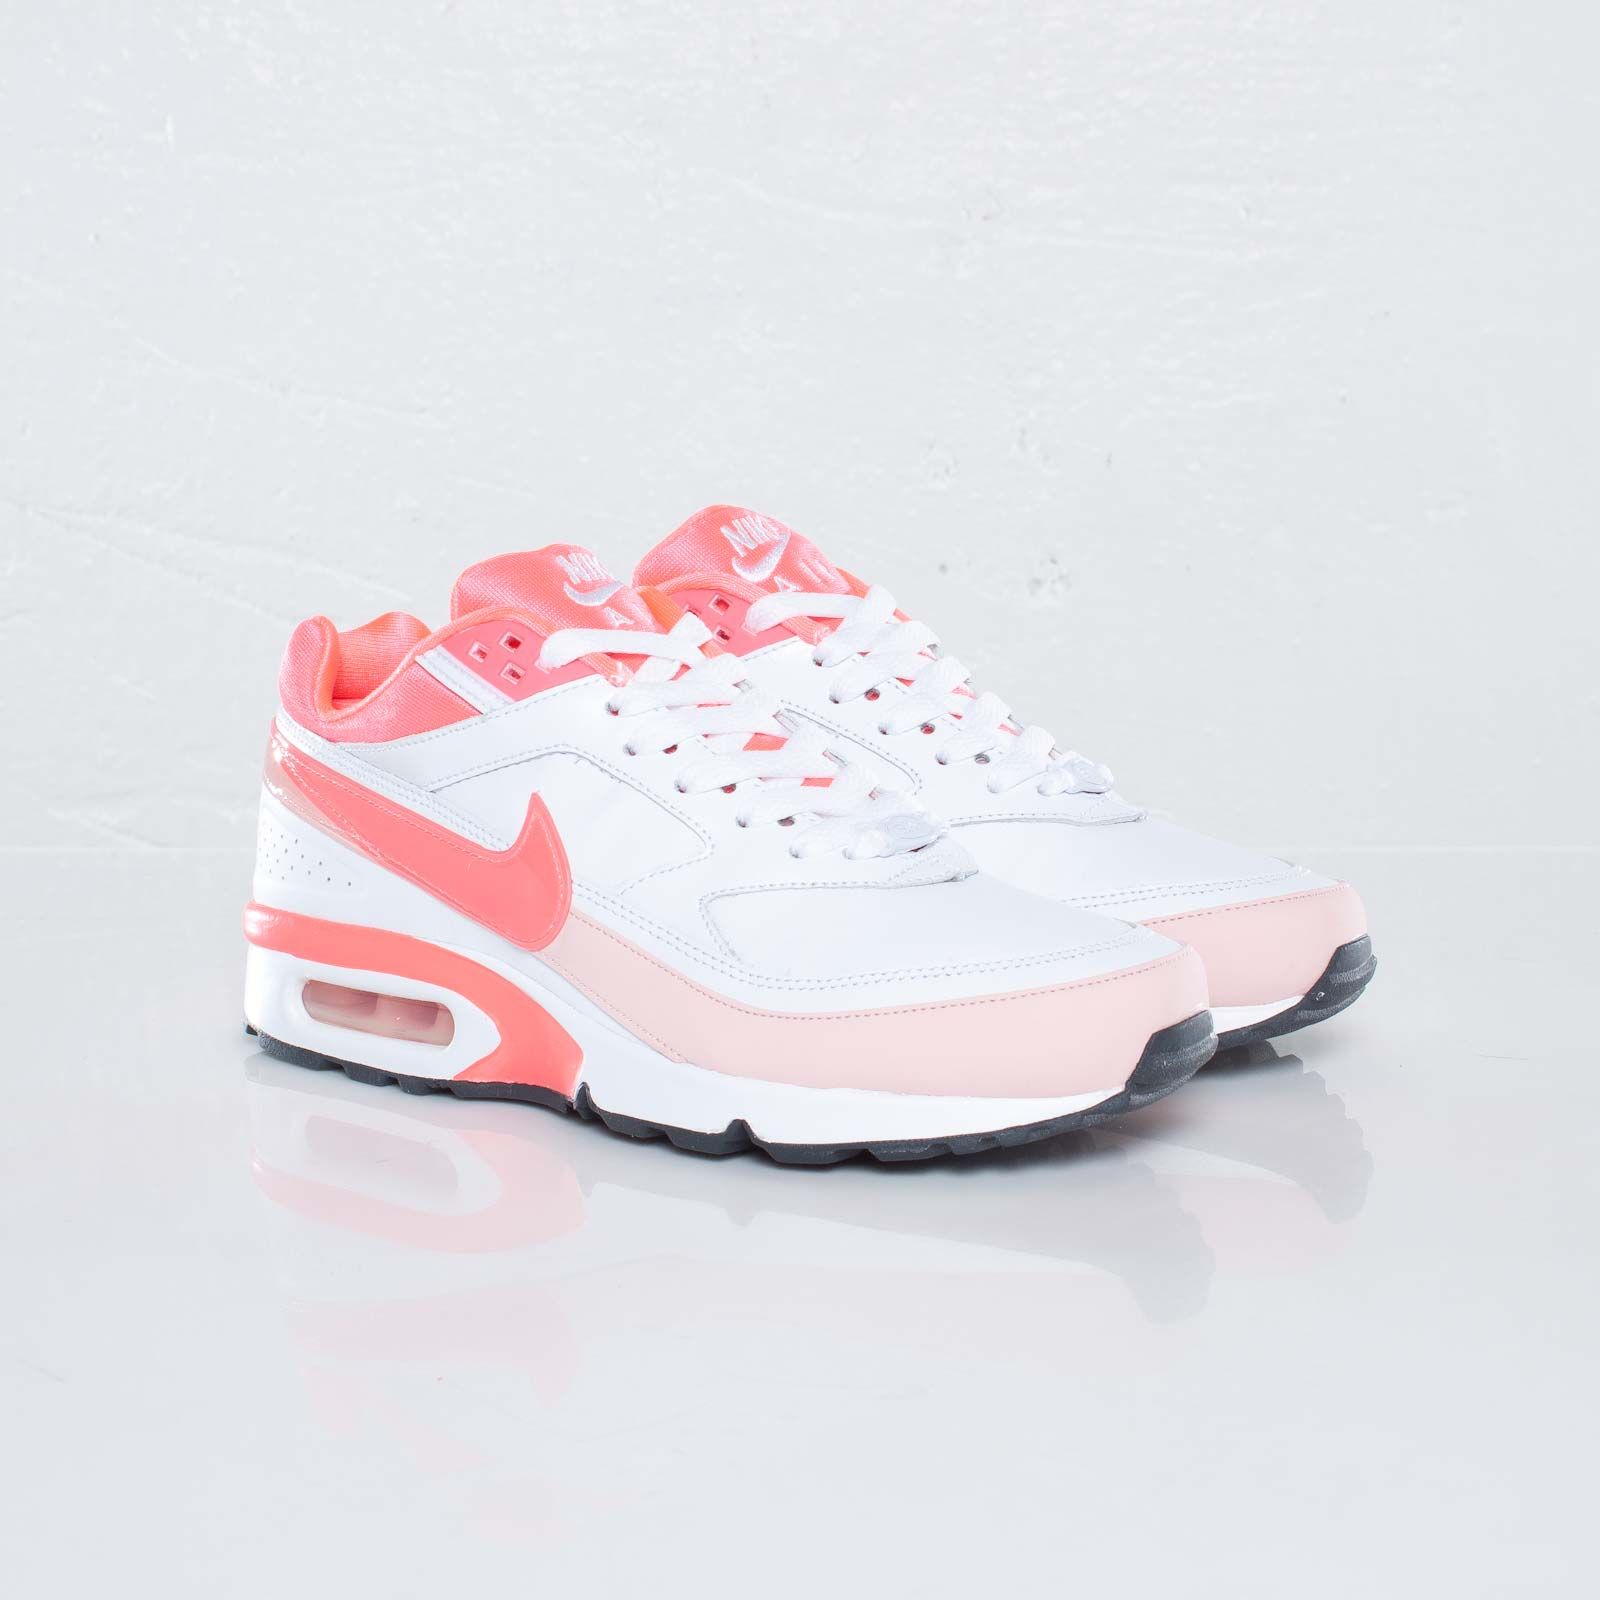 Nike Wmns Air Classic BW | Nike, Air max sneakers, Sneakers